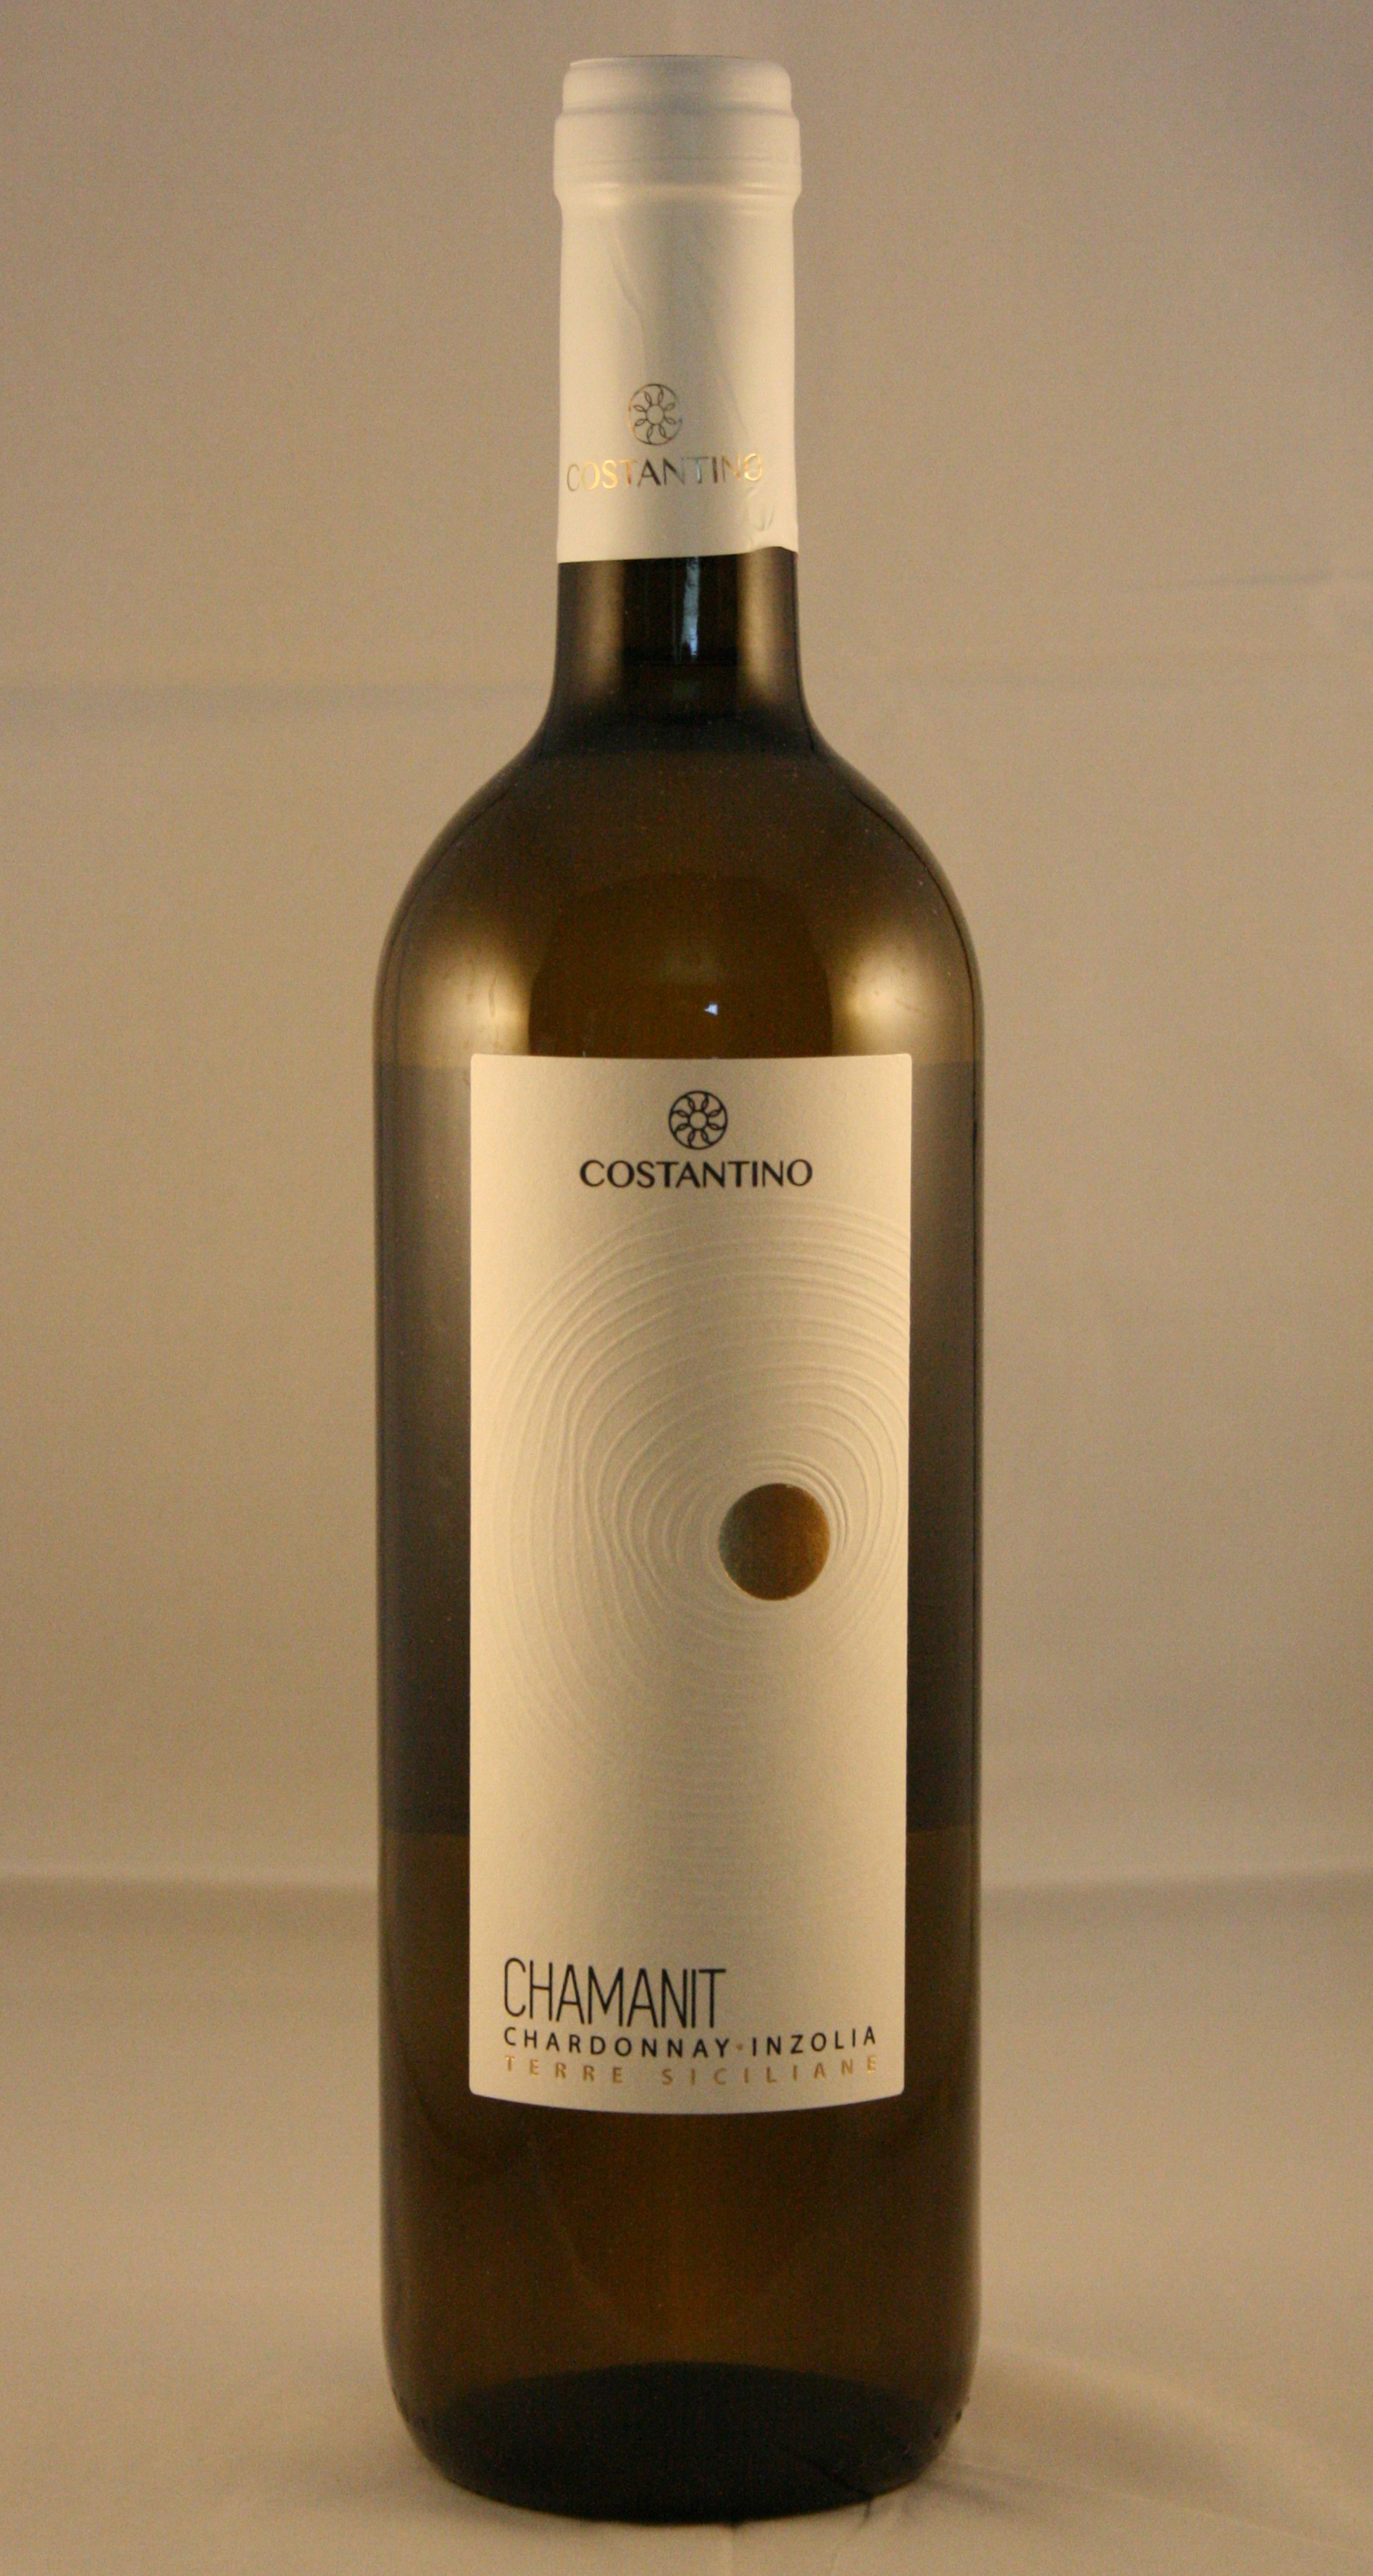 Costantino Chamanit Chardonnay/Inzolia IGT 75cl